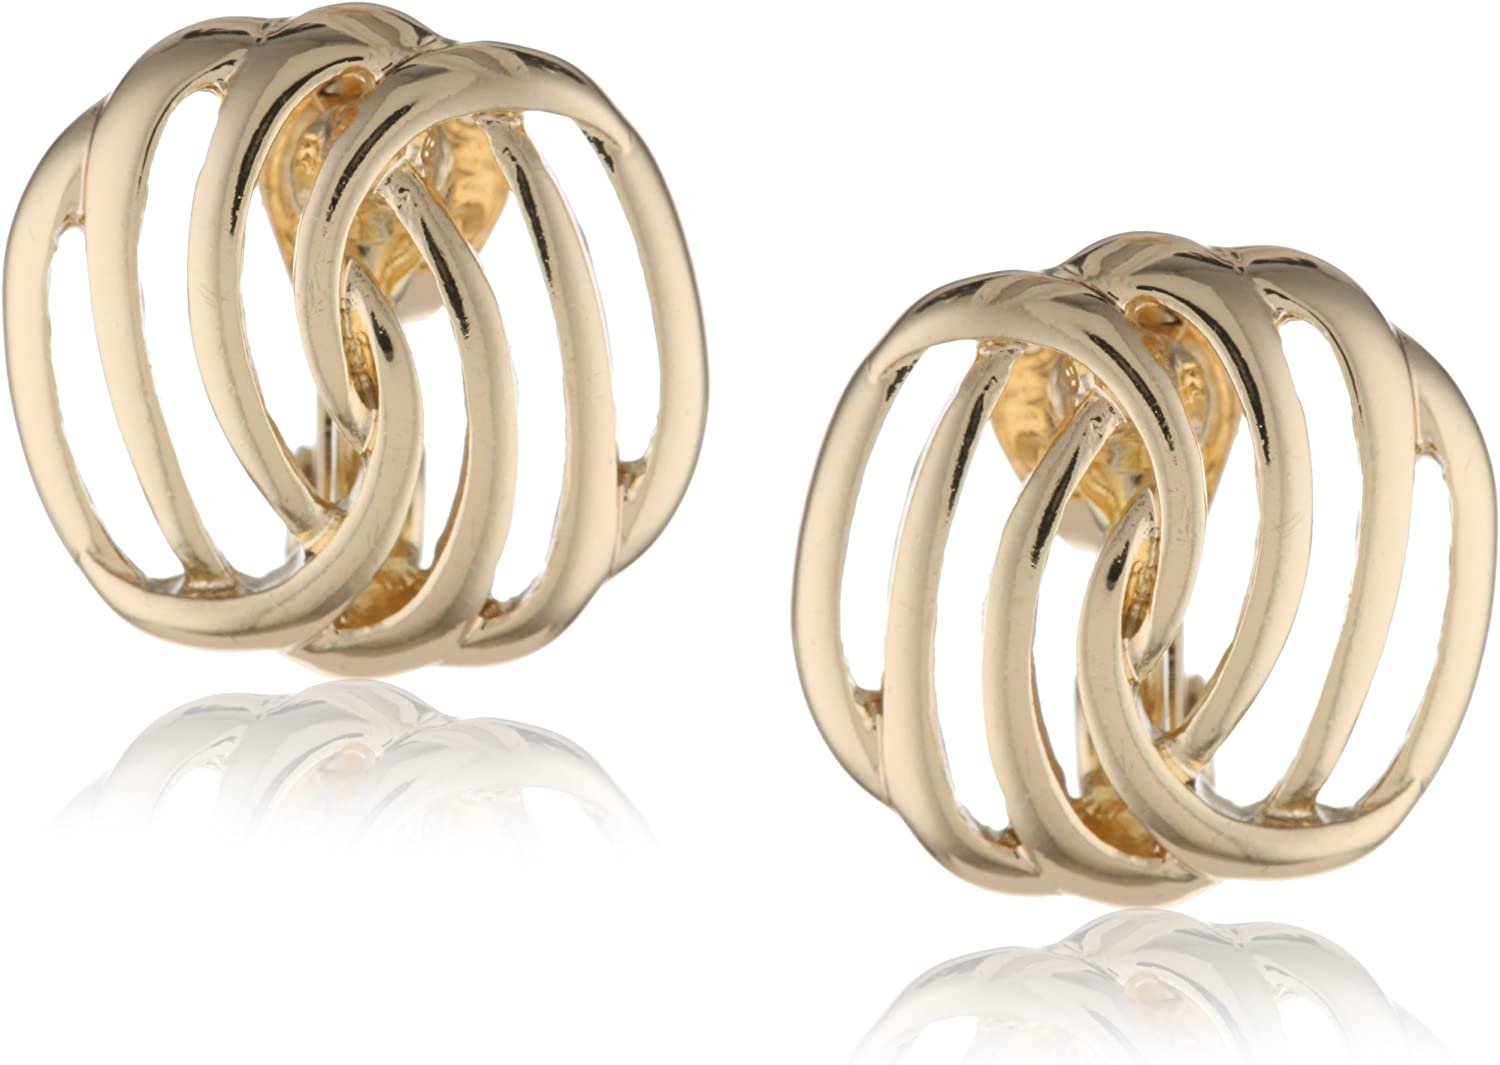 Napier New products world's highest quality favorite popular Gold-Tone Twisted Clip-On Earrings